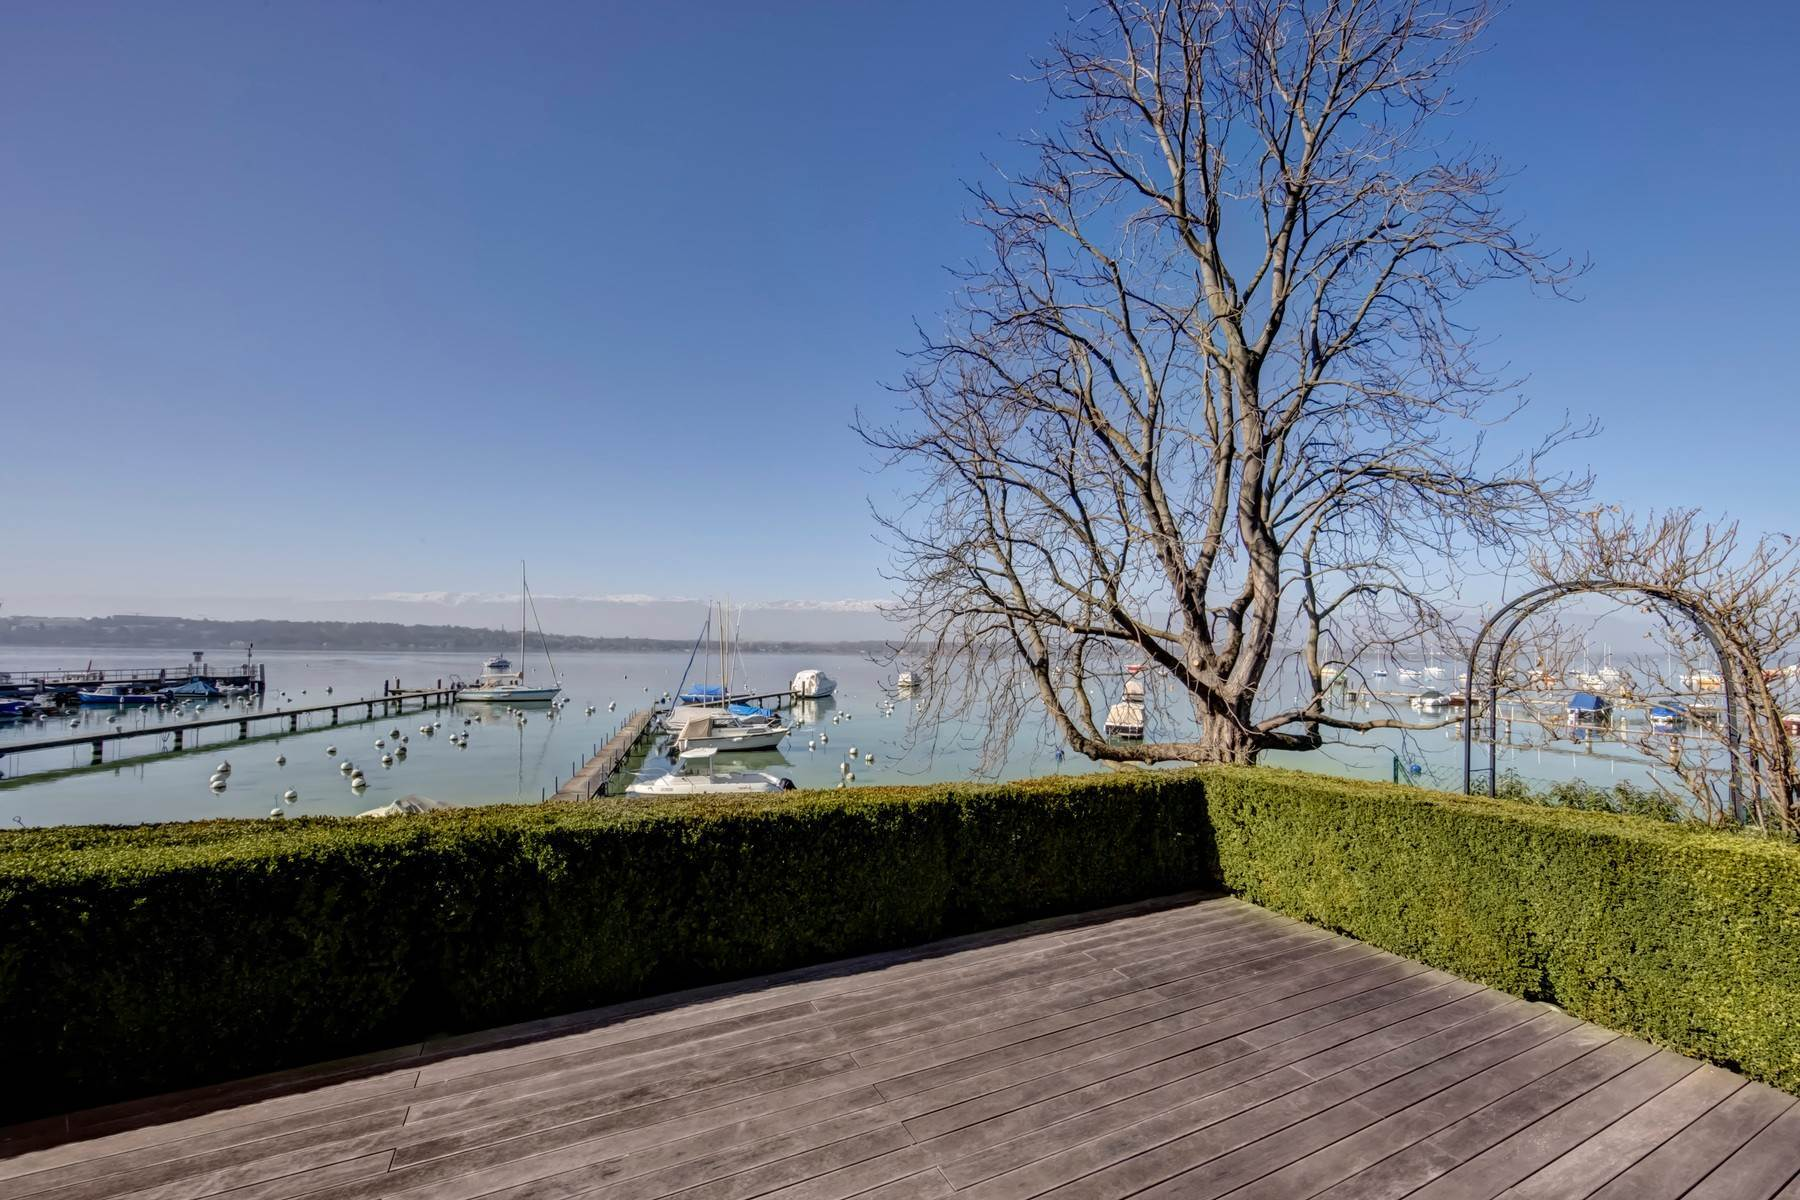 Single Family Homes for Sale at Superb waterfront villa with Jet d'Eau view Cologny Cologny, Geneva 1223 Switzerland